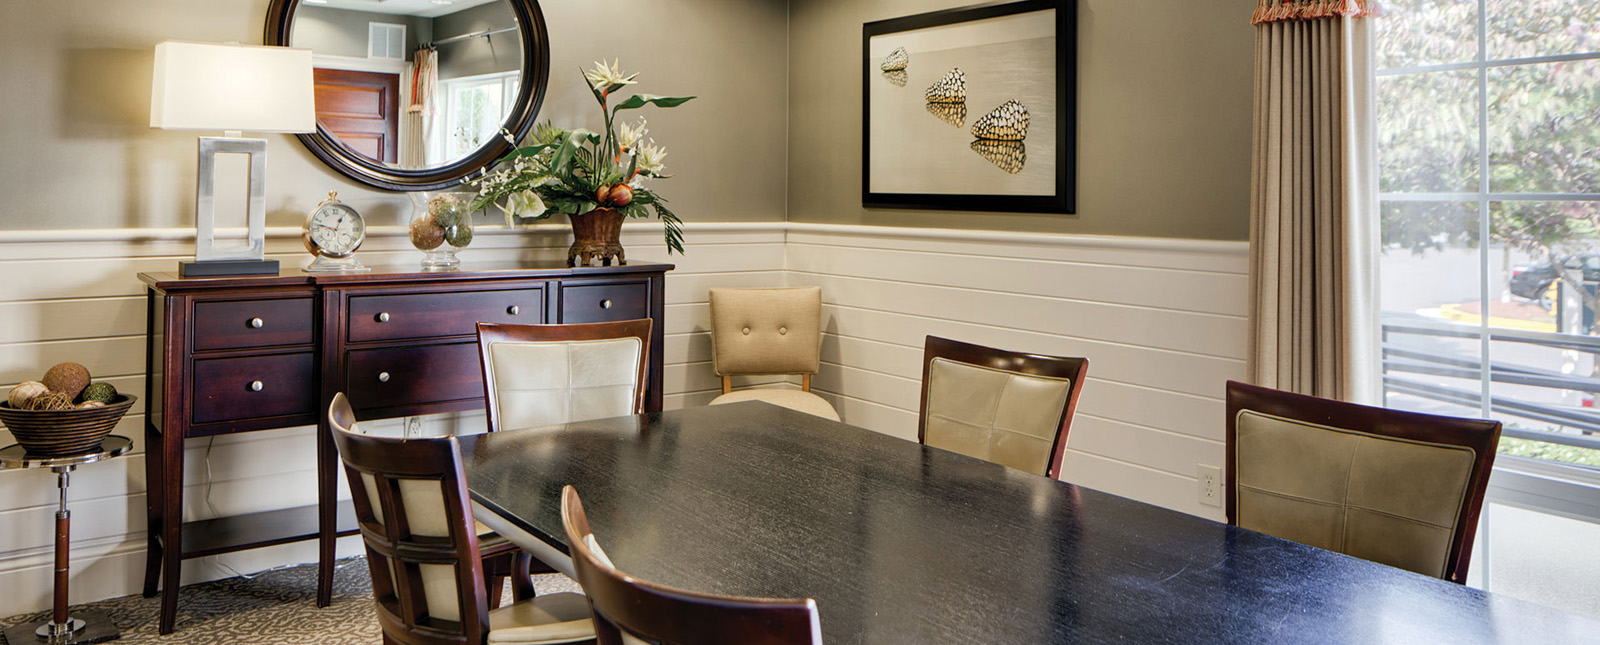 Woodside Garden Apartments Annapolis Md